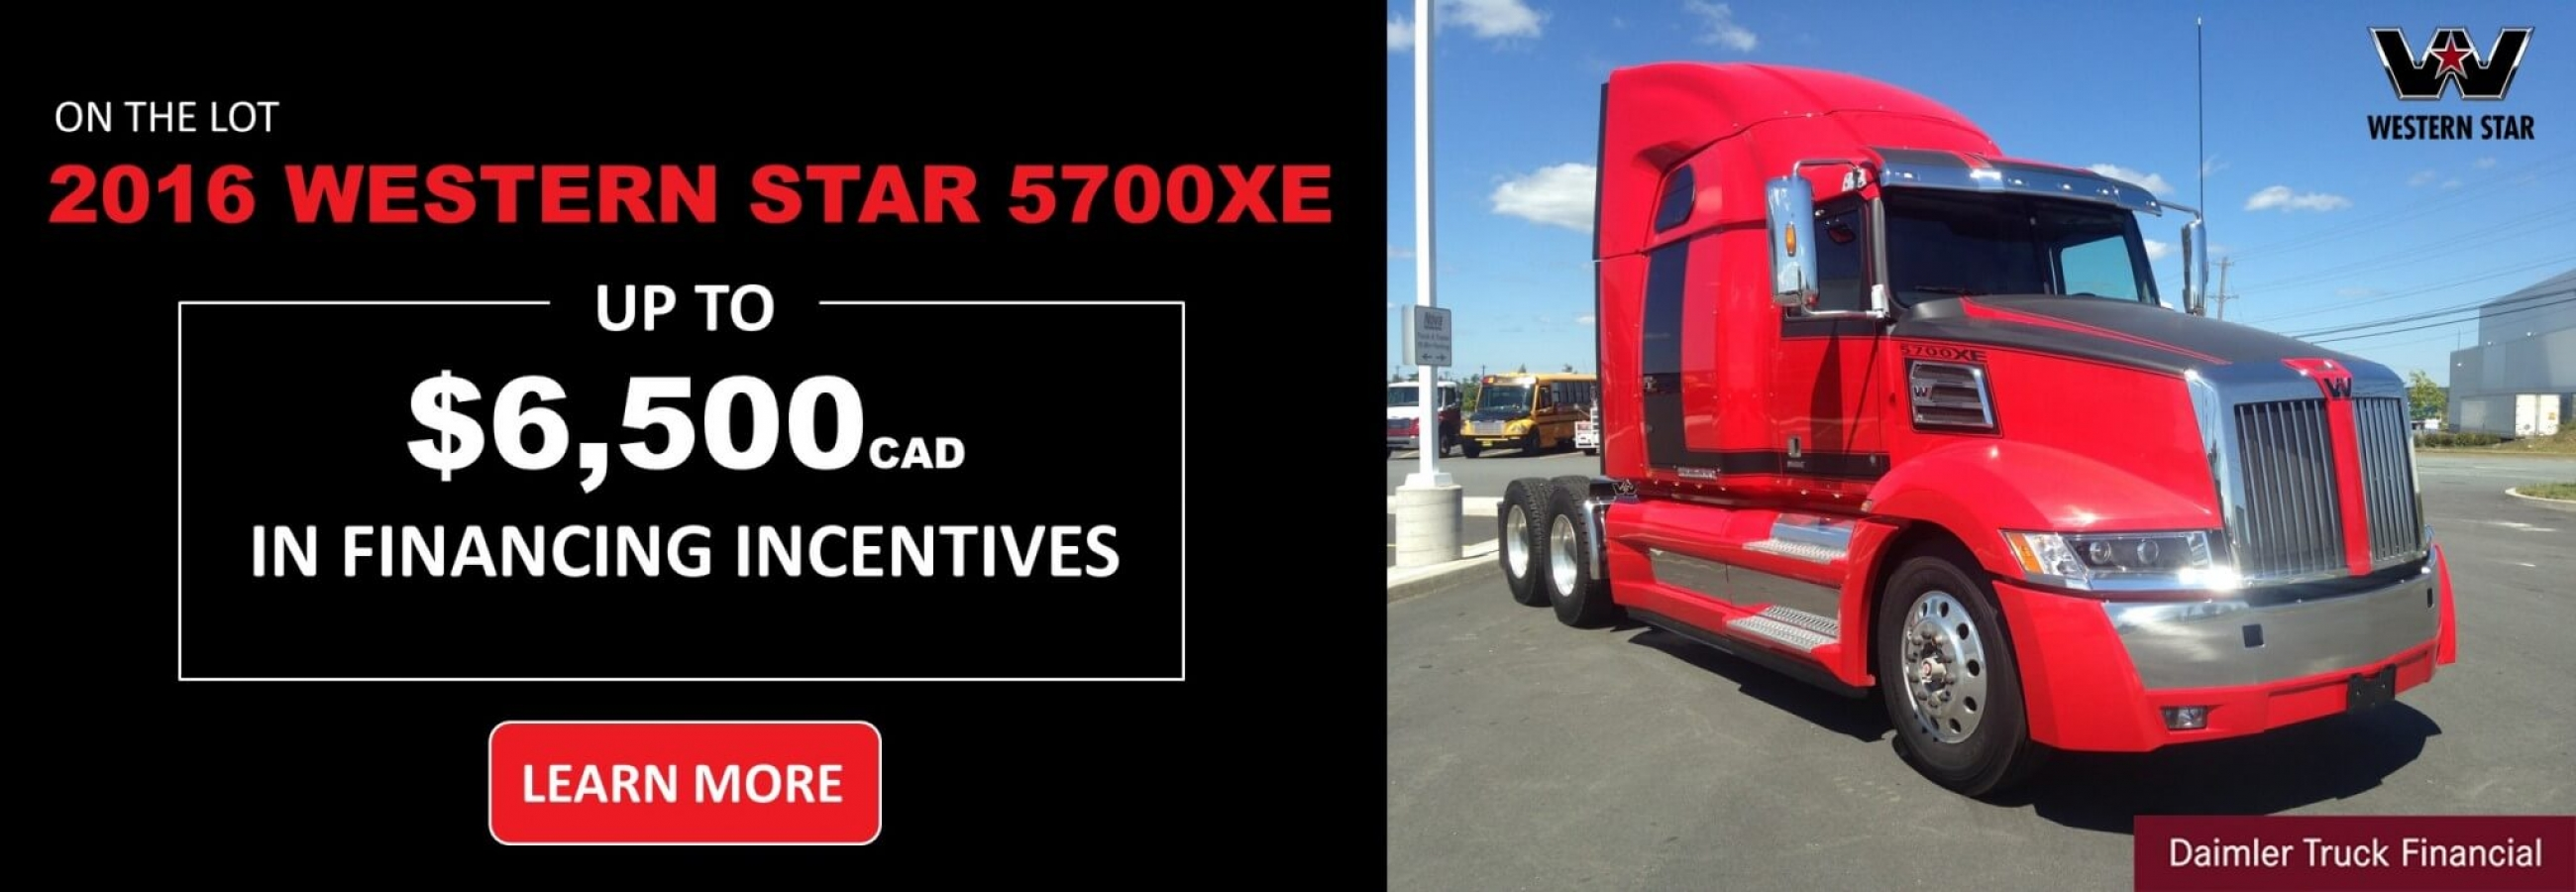 5700 FINANCING INCENTIVES_6500